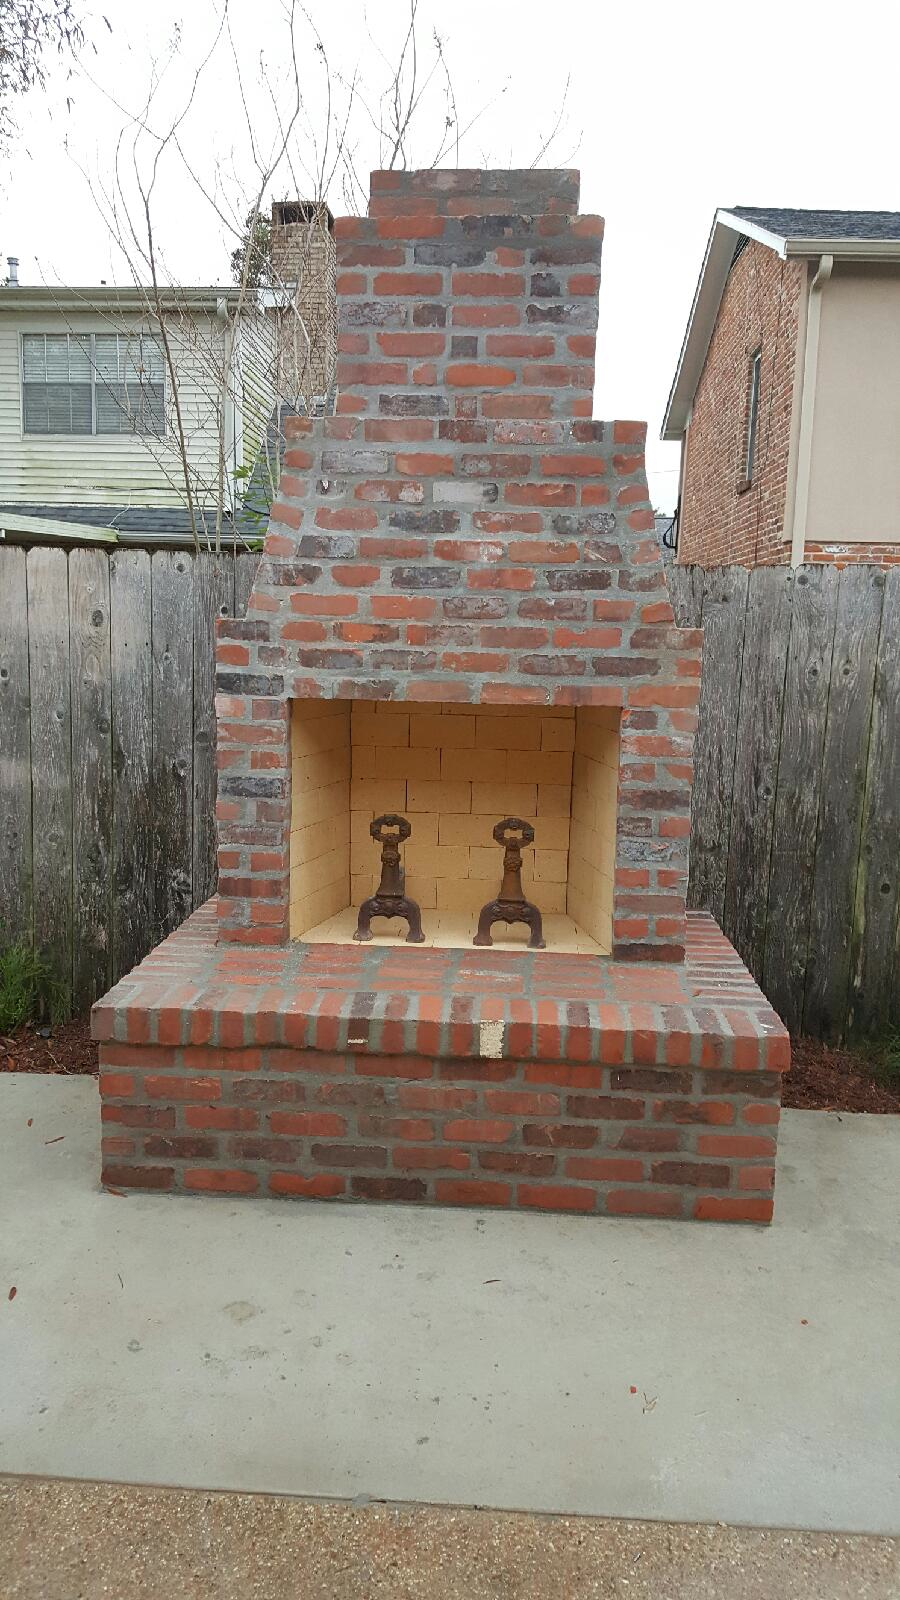 Fireplace_April2016.jpg